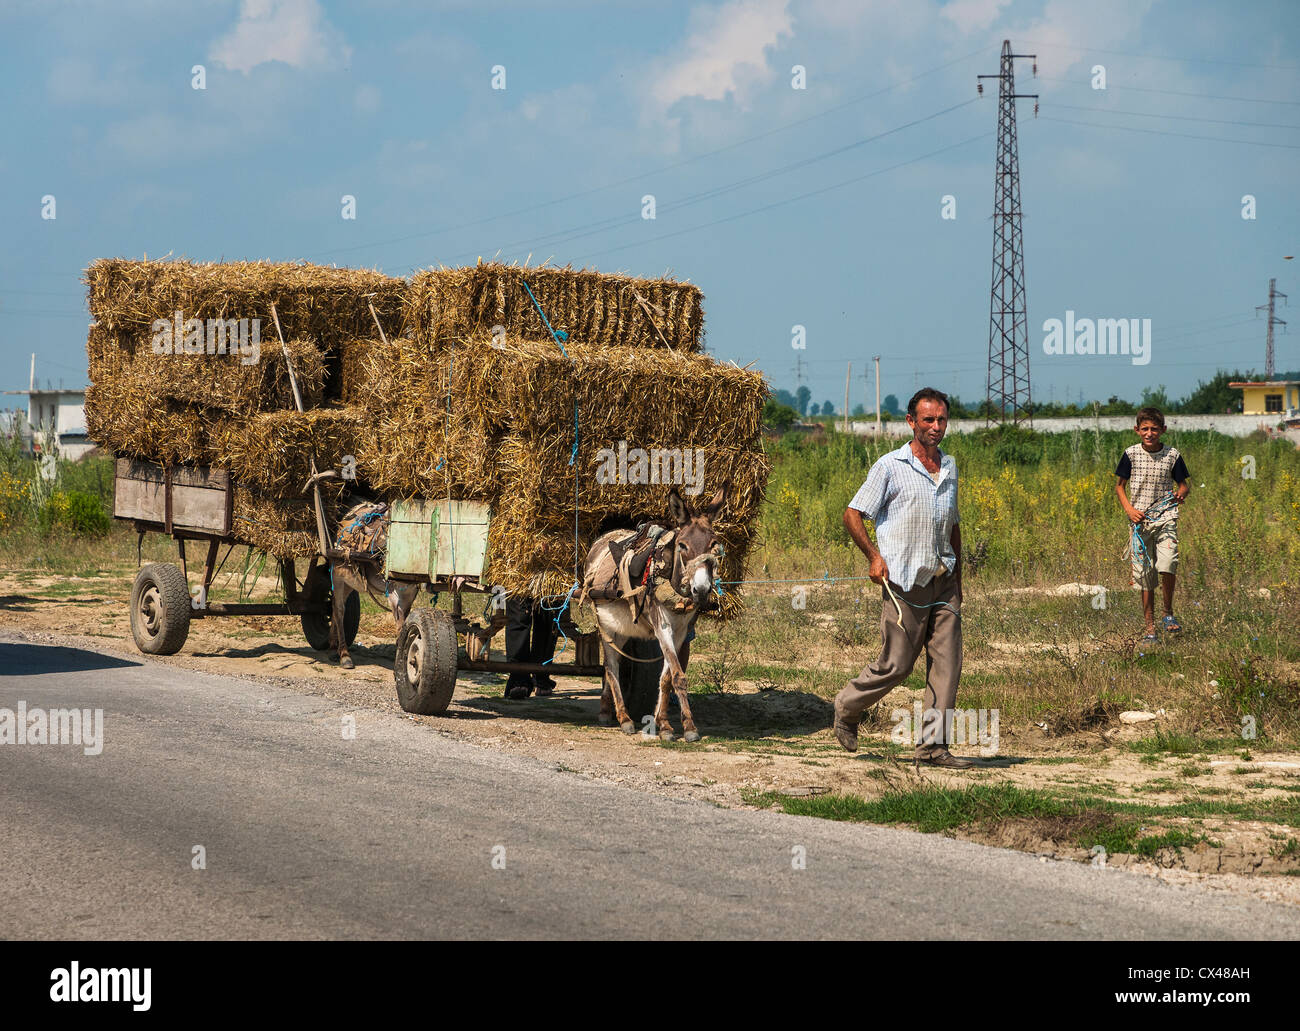 Transporting harvested hay using carts pulled by mules near Berat in central Albania. - Stock Image